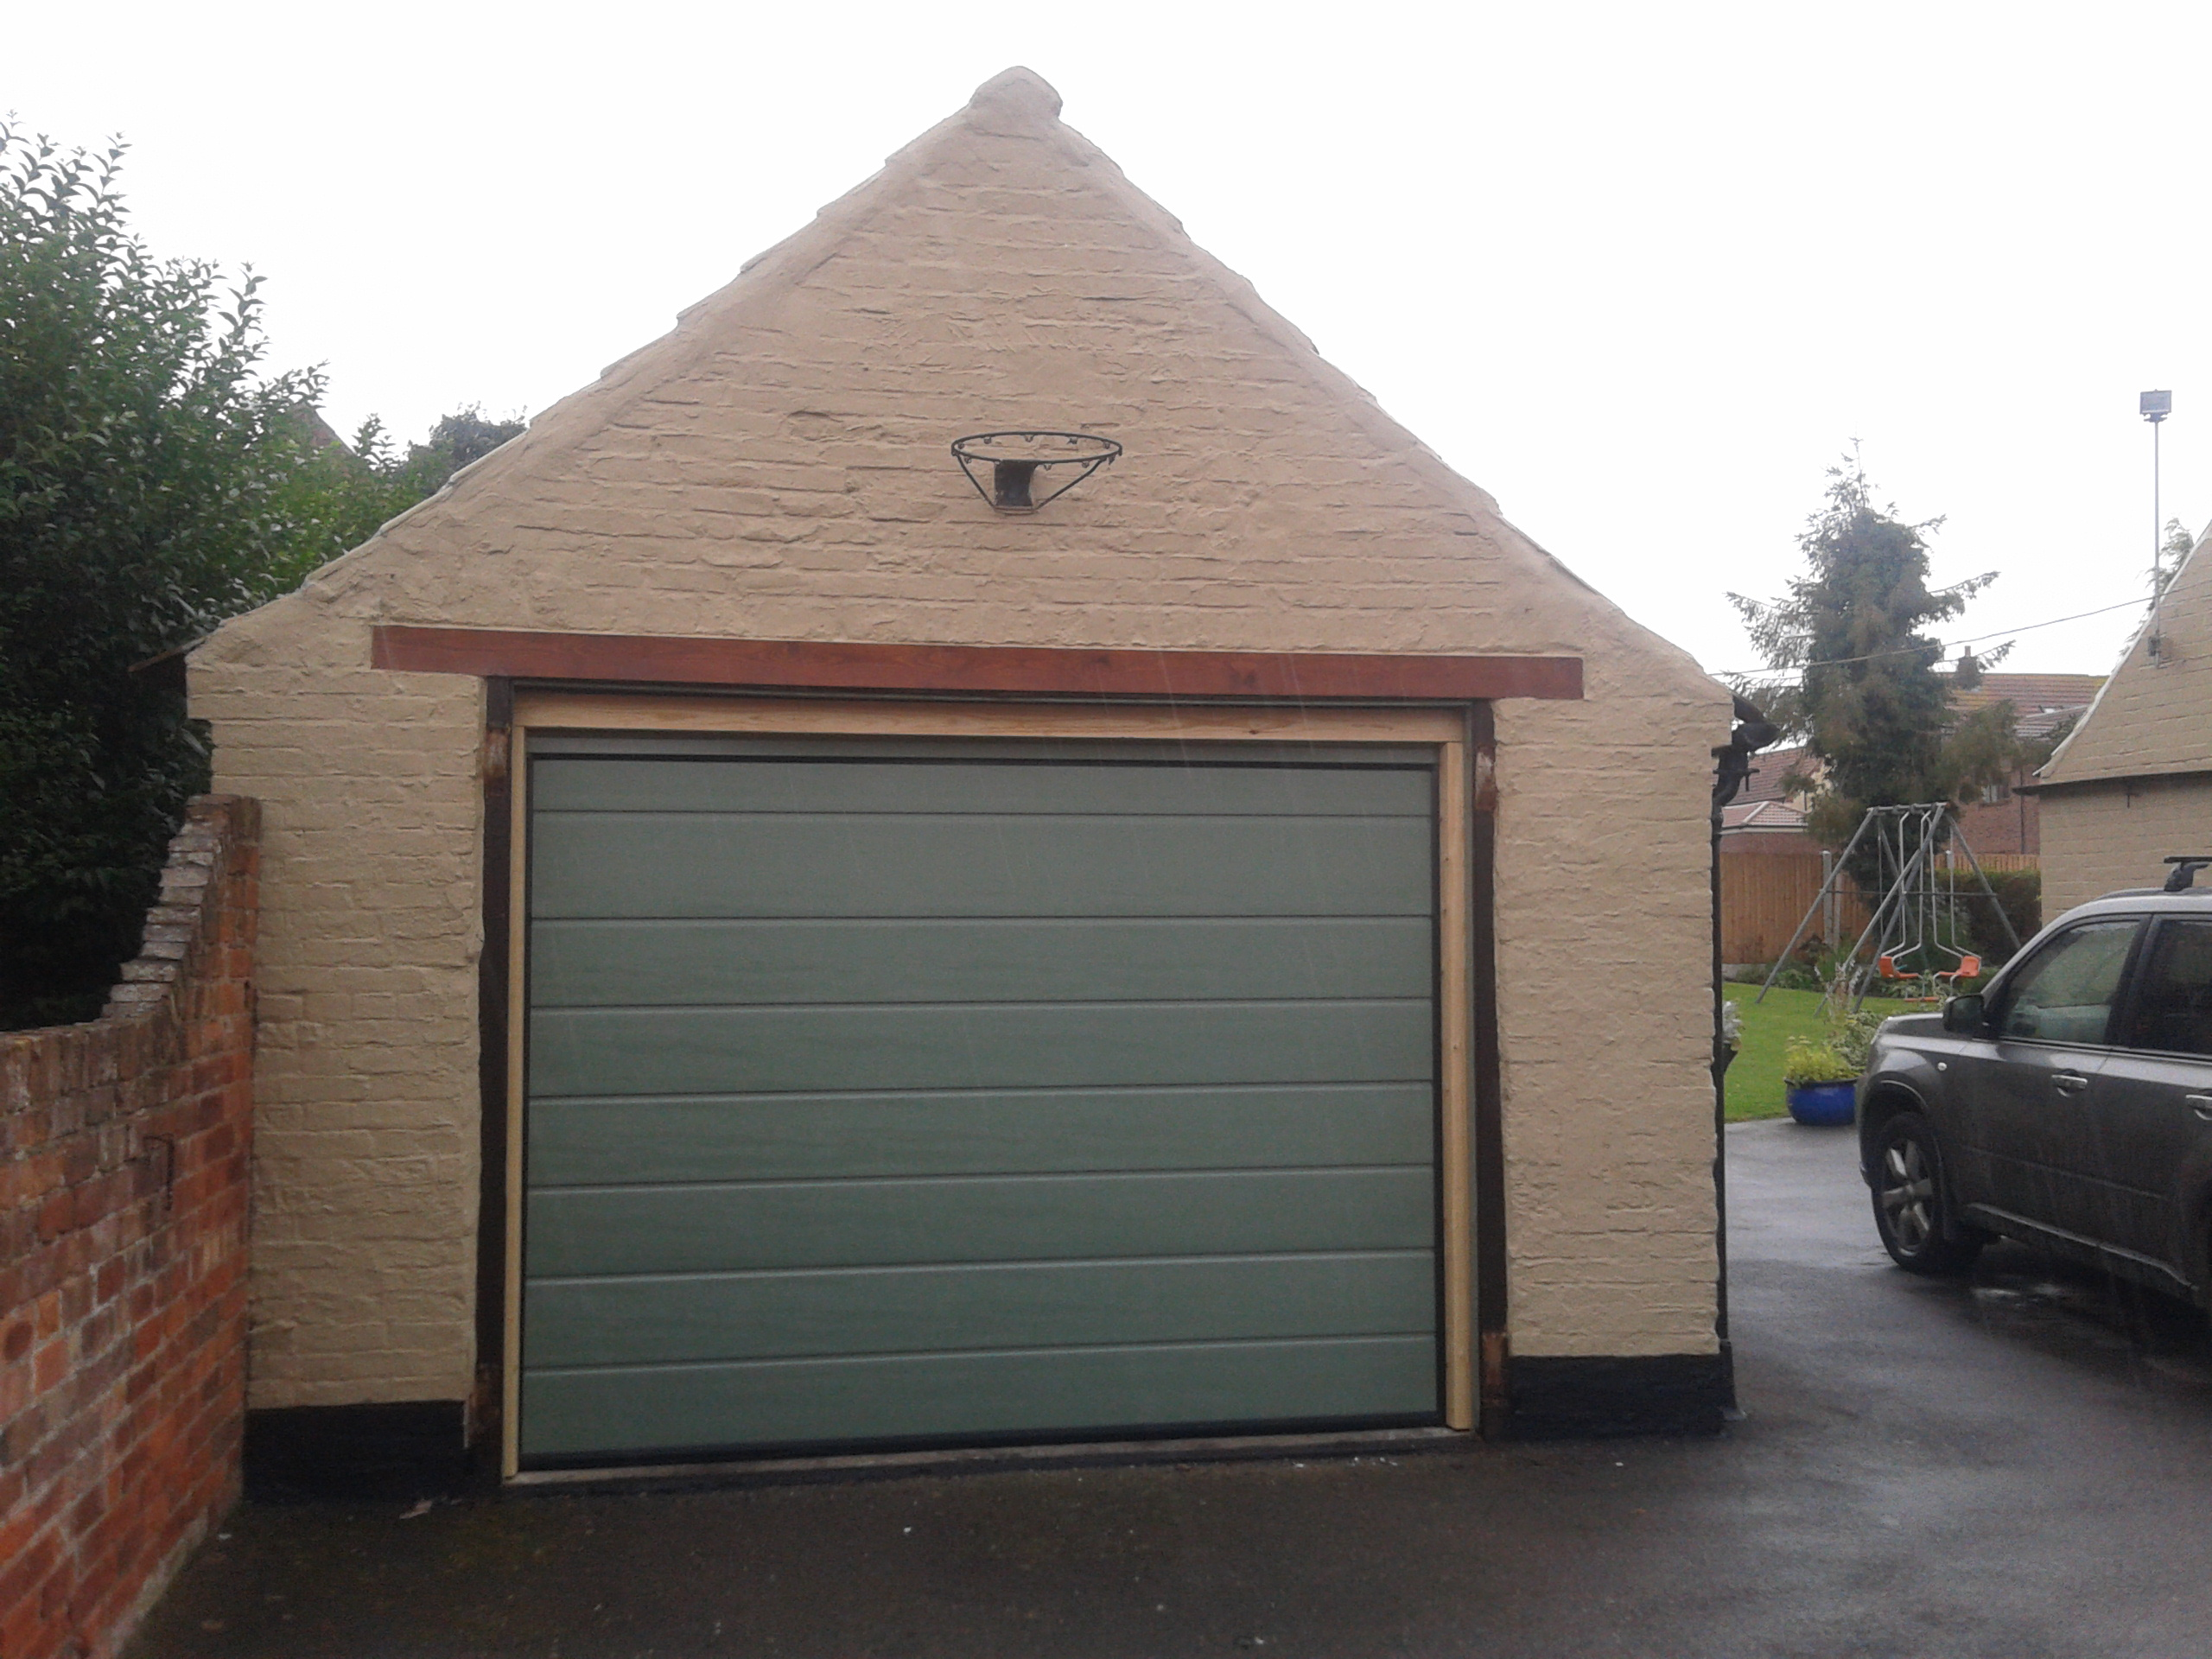 Seceuroglide insulated sectional garage door georgian cassette - Custom Colour Automatic Sectional Garage Door